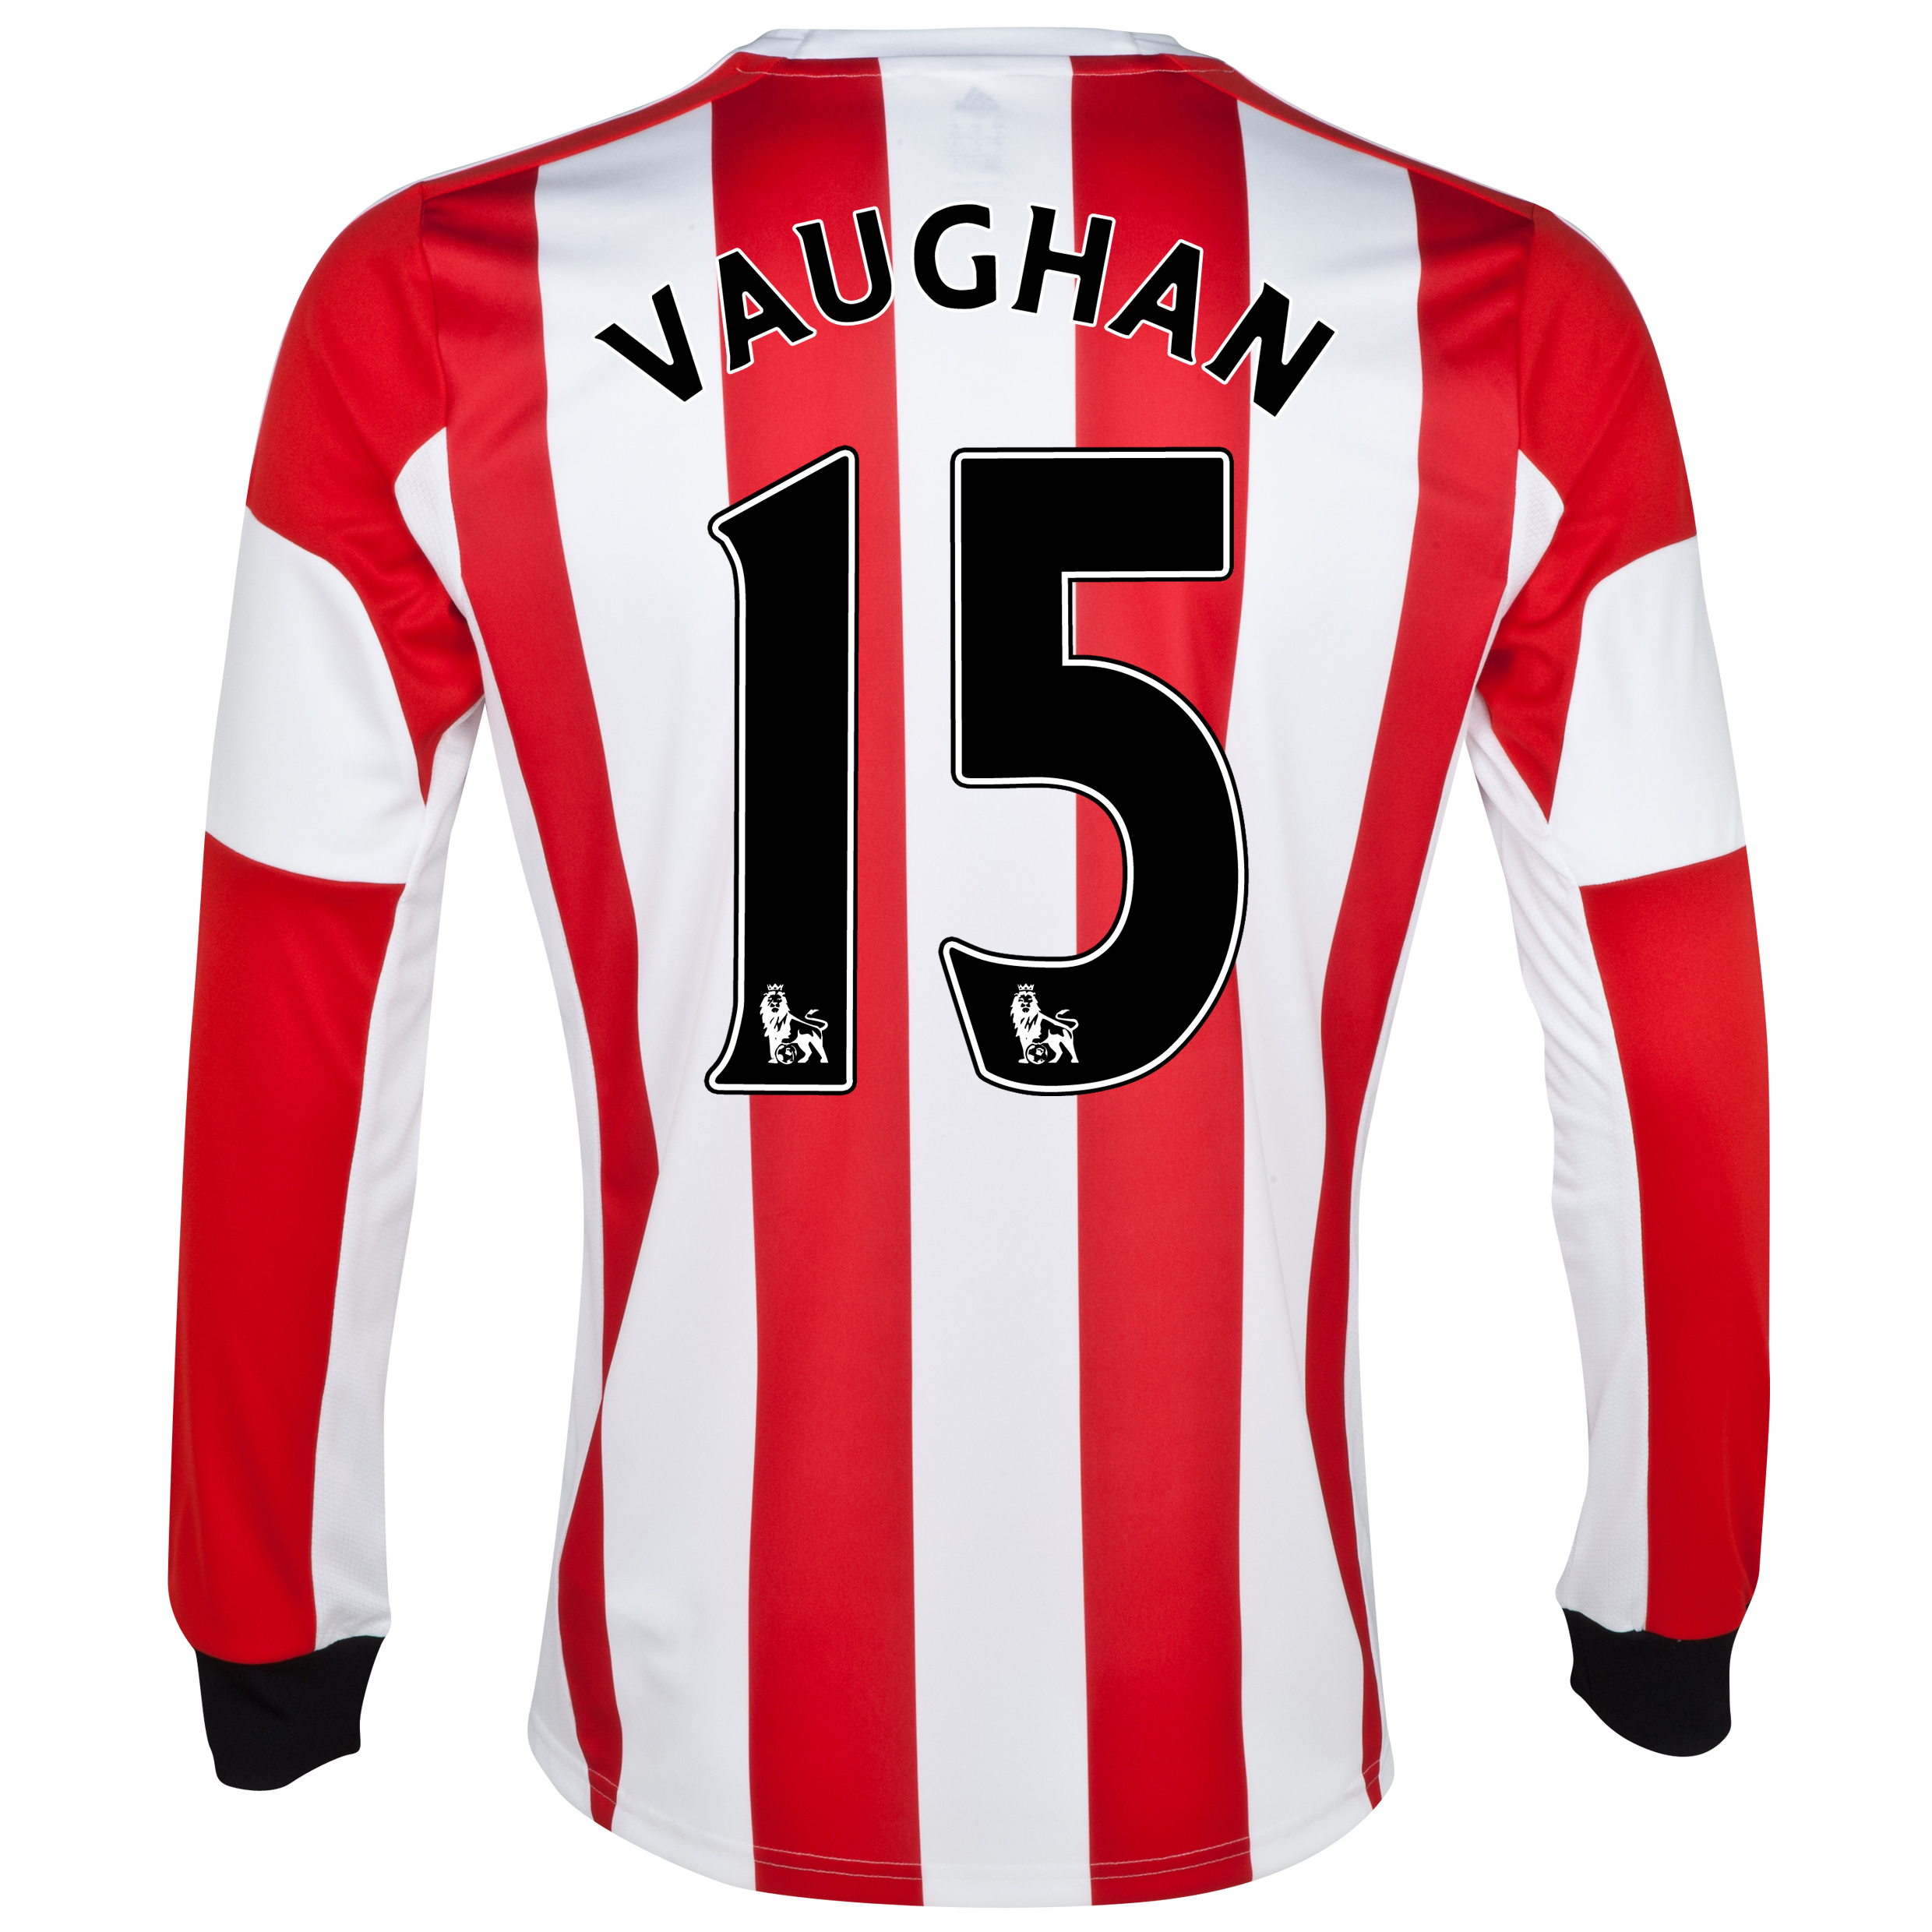 Sunderland Home Shirt 2013/14 - Long Sleeved  with Vaughan 15 printing